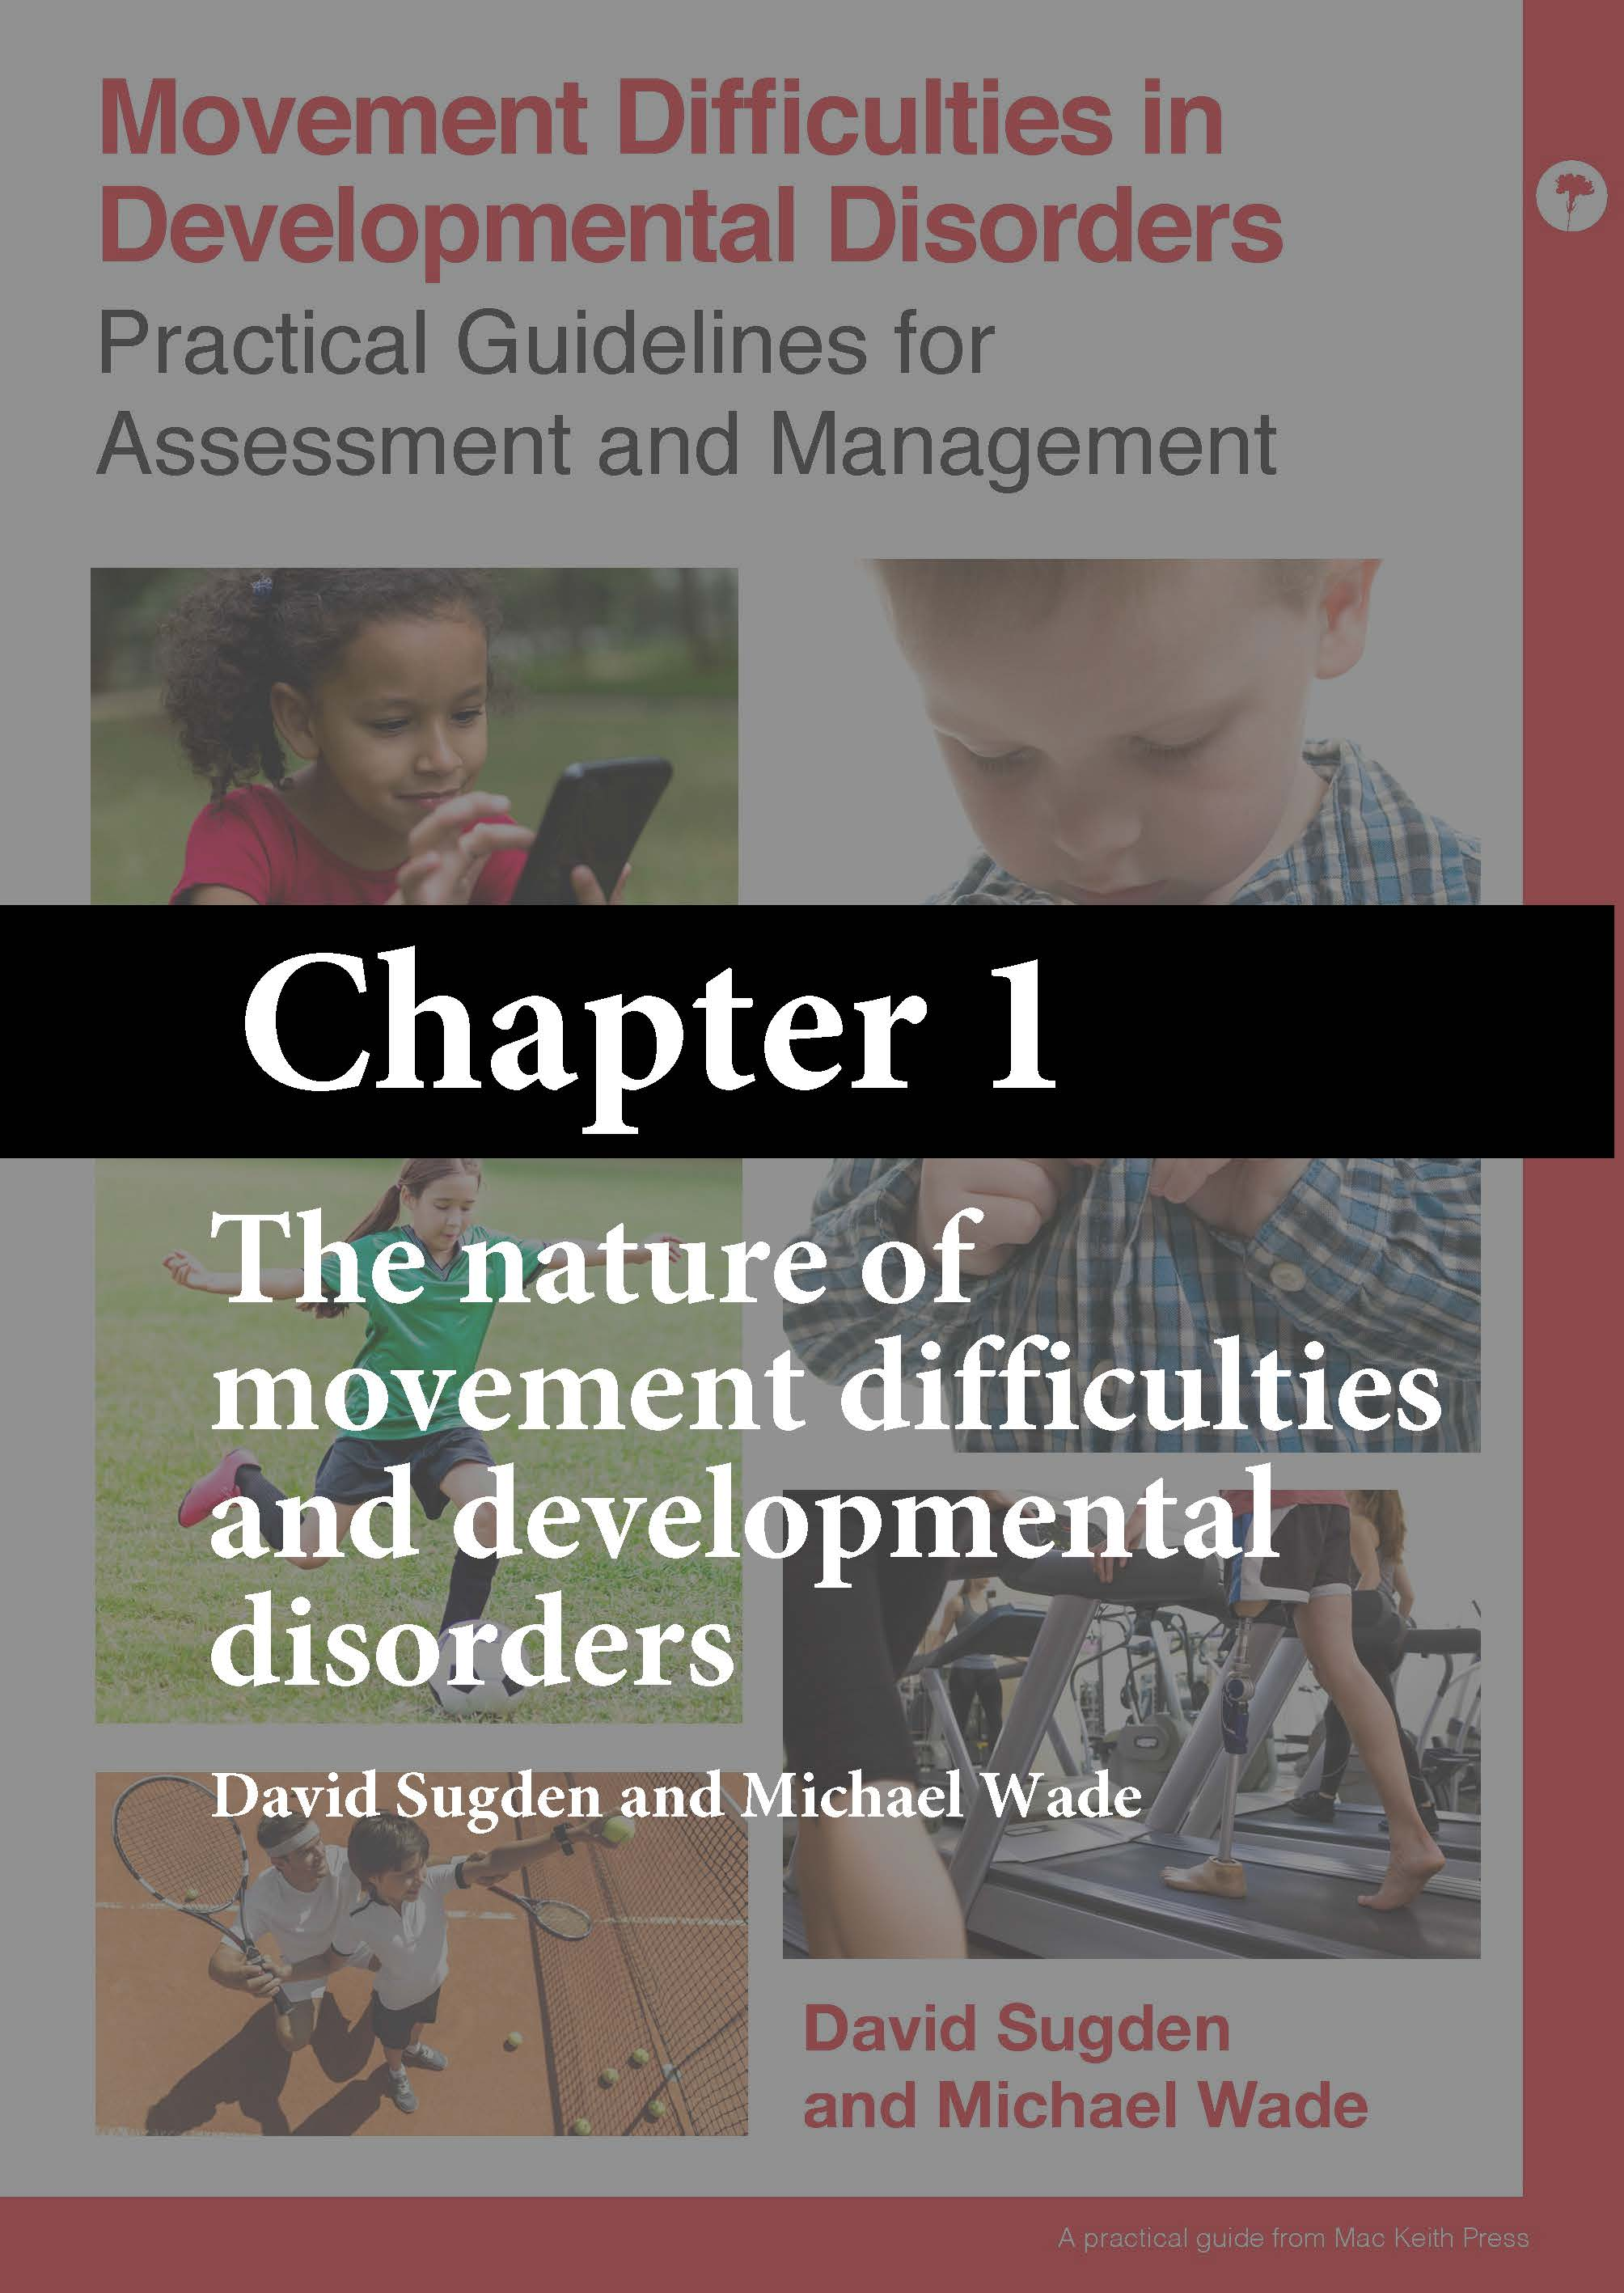 Movement Difficulties in Developmental Disorders - Chapter 1 - The Nature of Movement Difficulties and Developmental Disorders (free ebook)